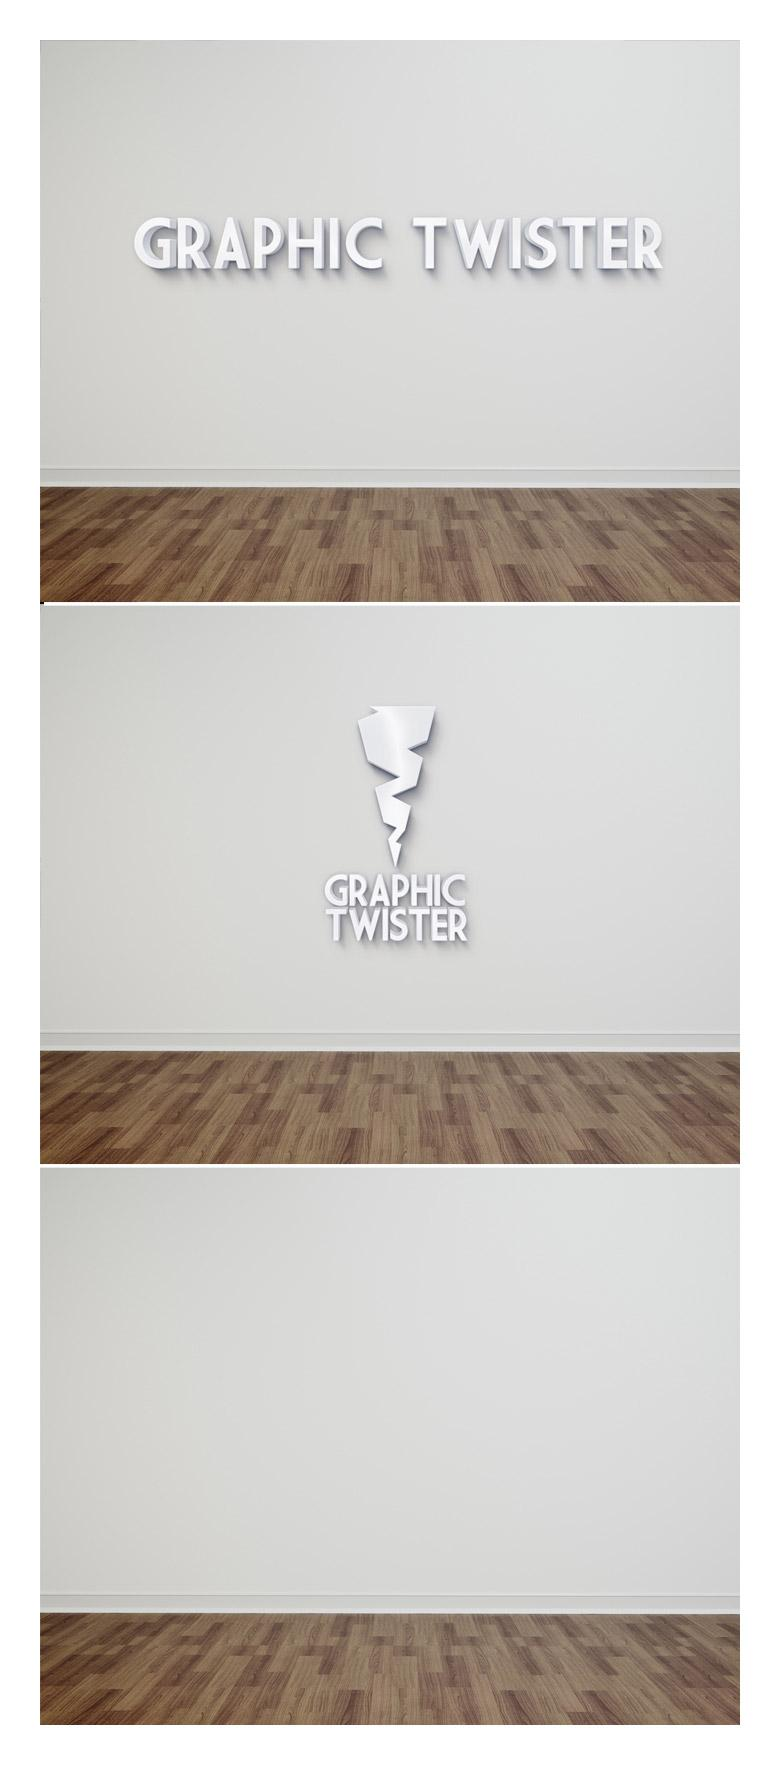 3D Text on Wall Mockup